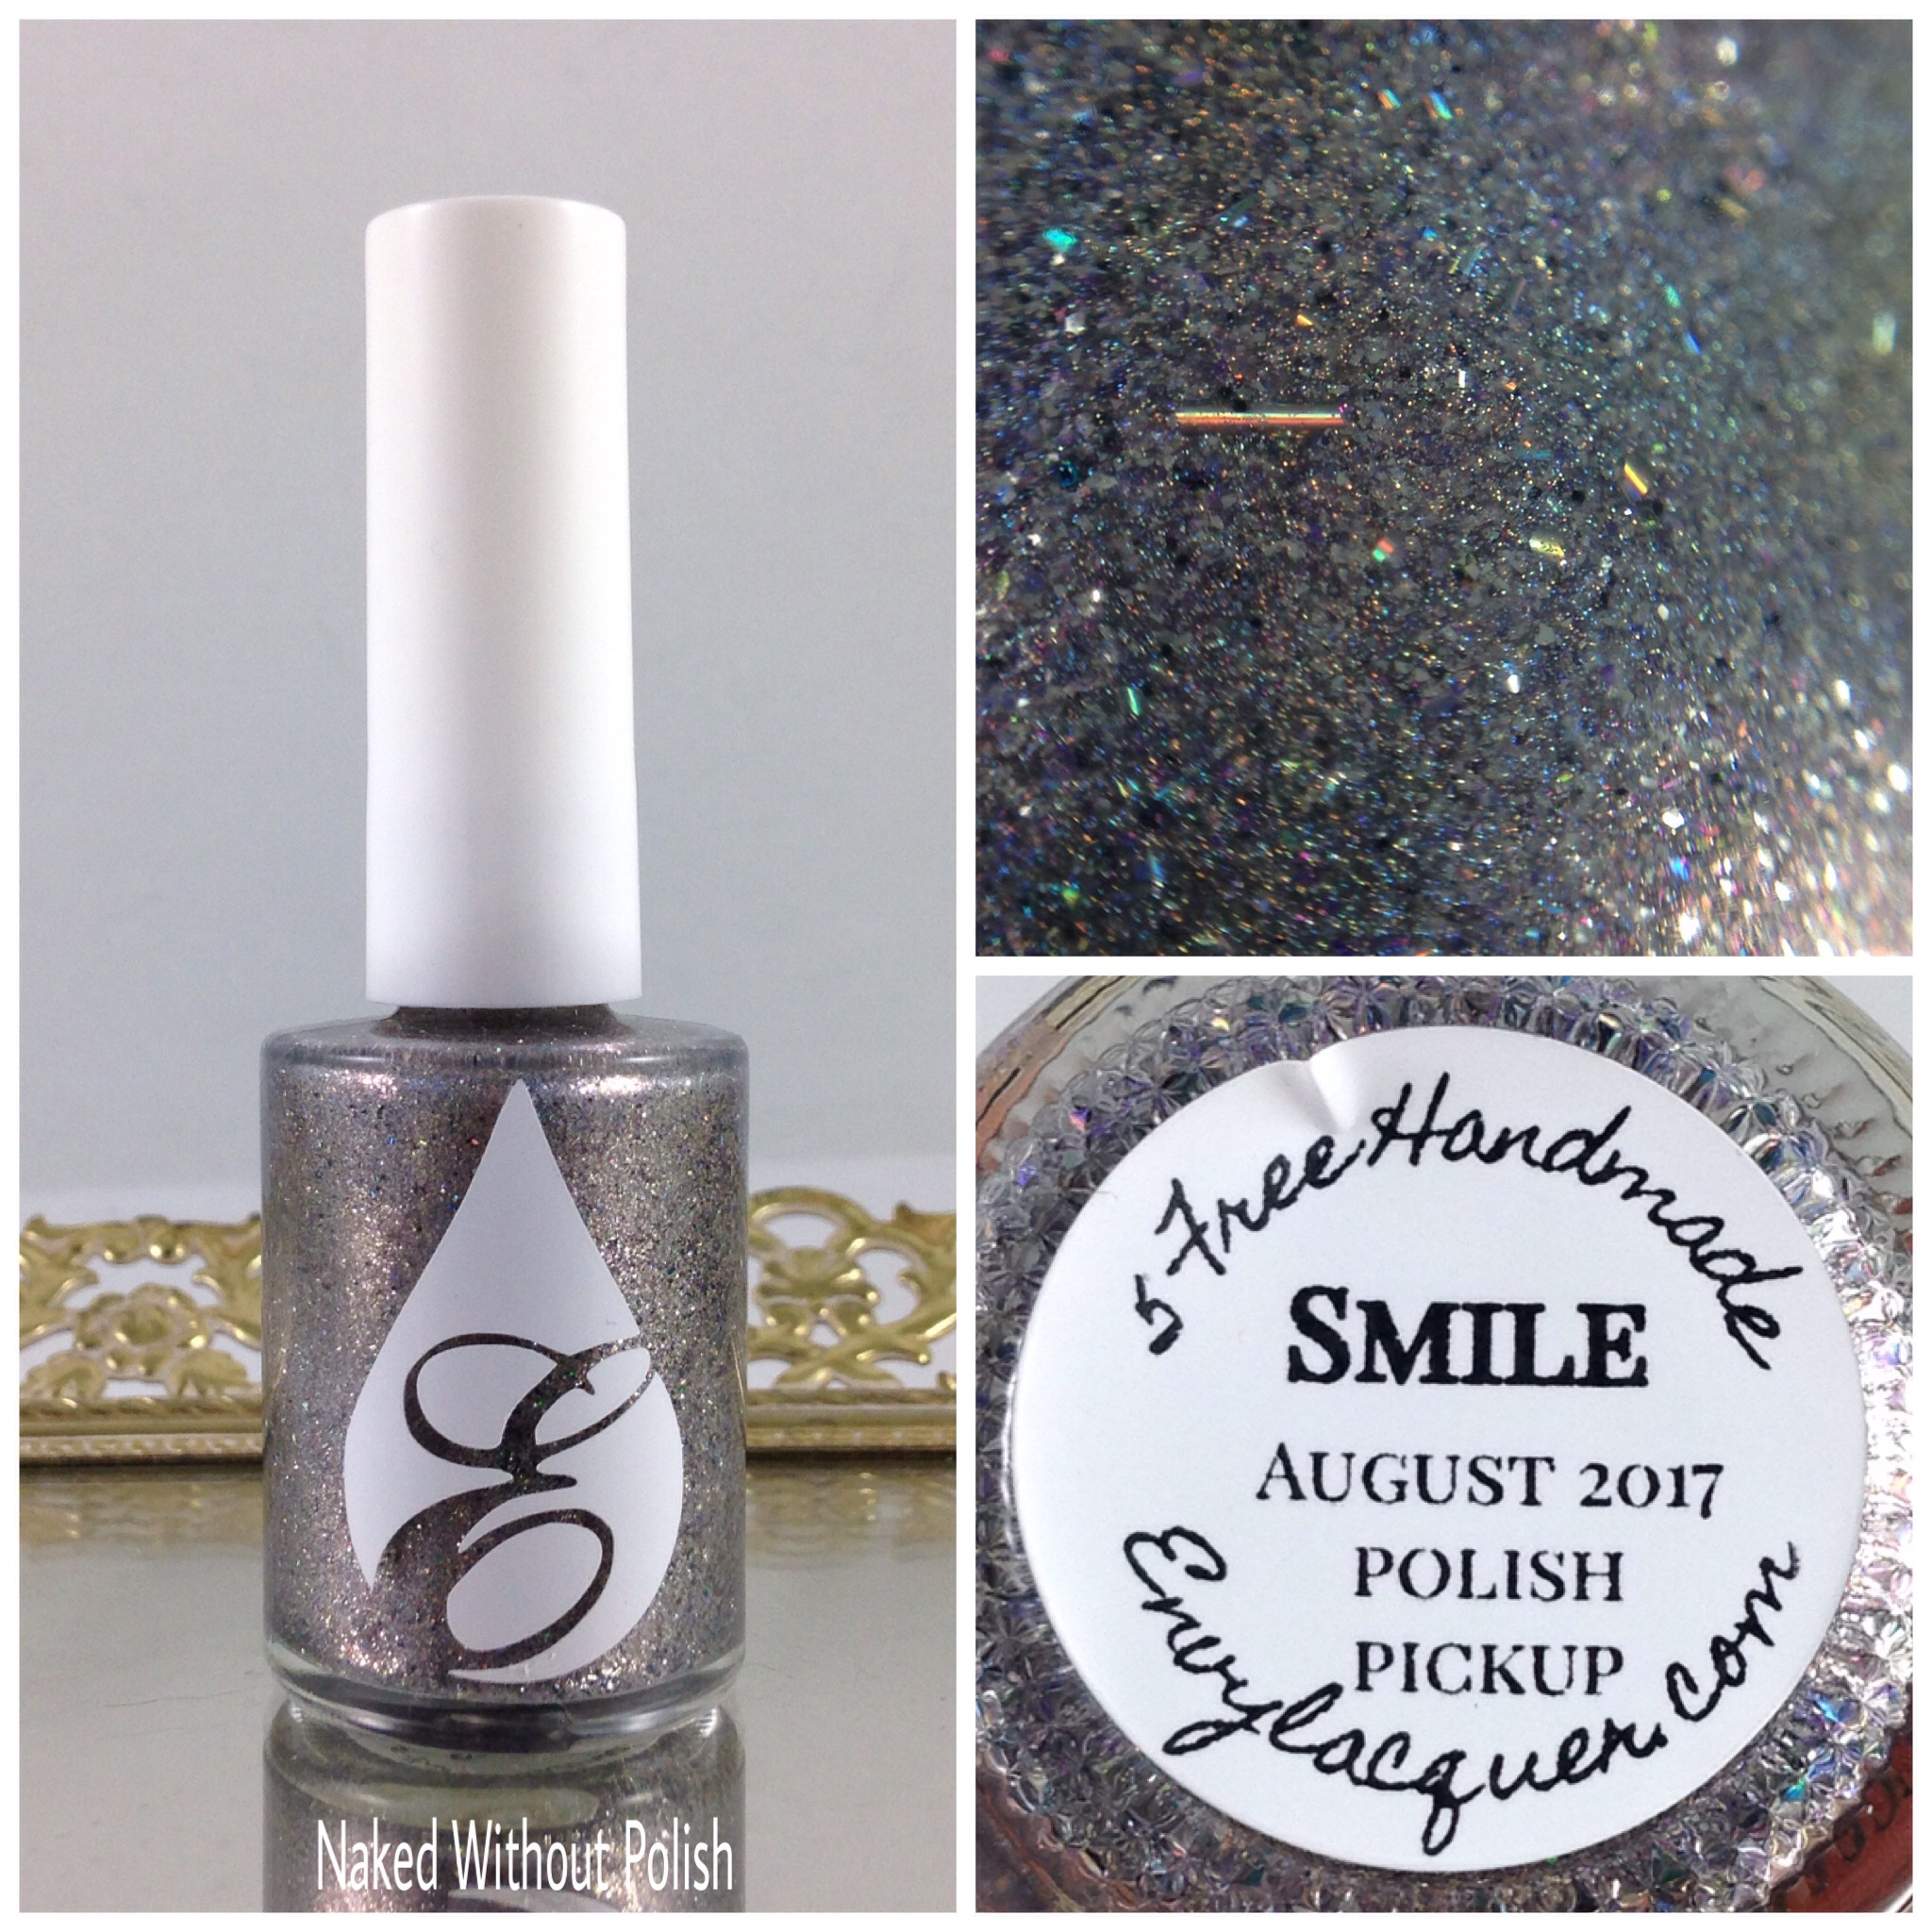 Polish-Pickup-Envy-Lacquer-Smile-1